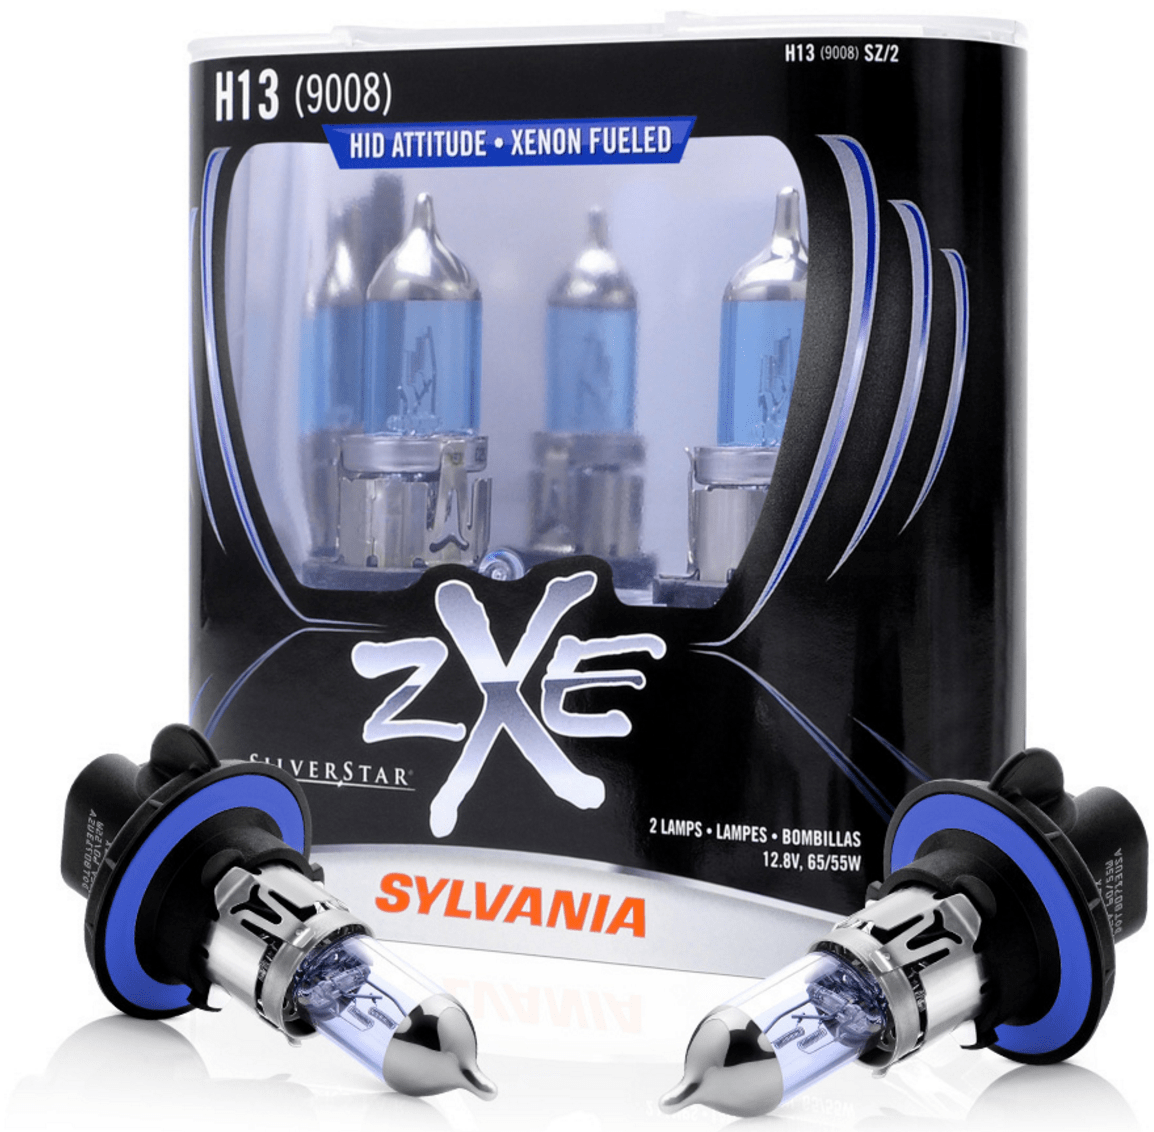 Sylvania silverstar zxe headlight review best headlight bulbs sylvania silverstar zxe headlight review nvjuhfo Choice Image